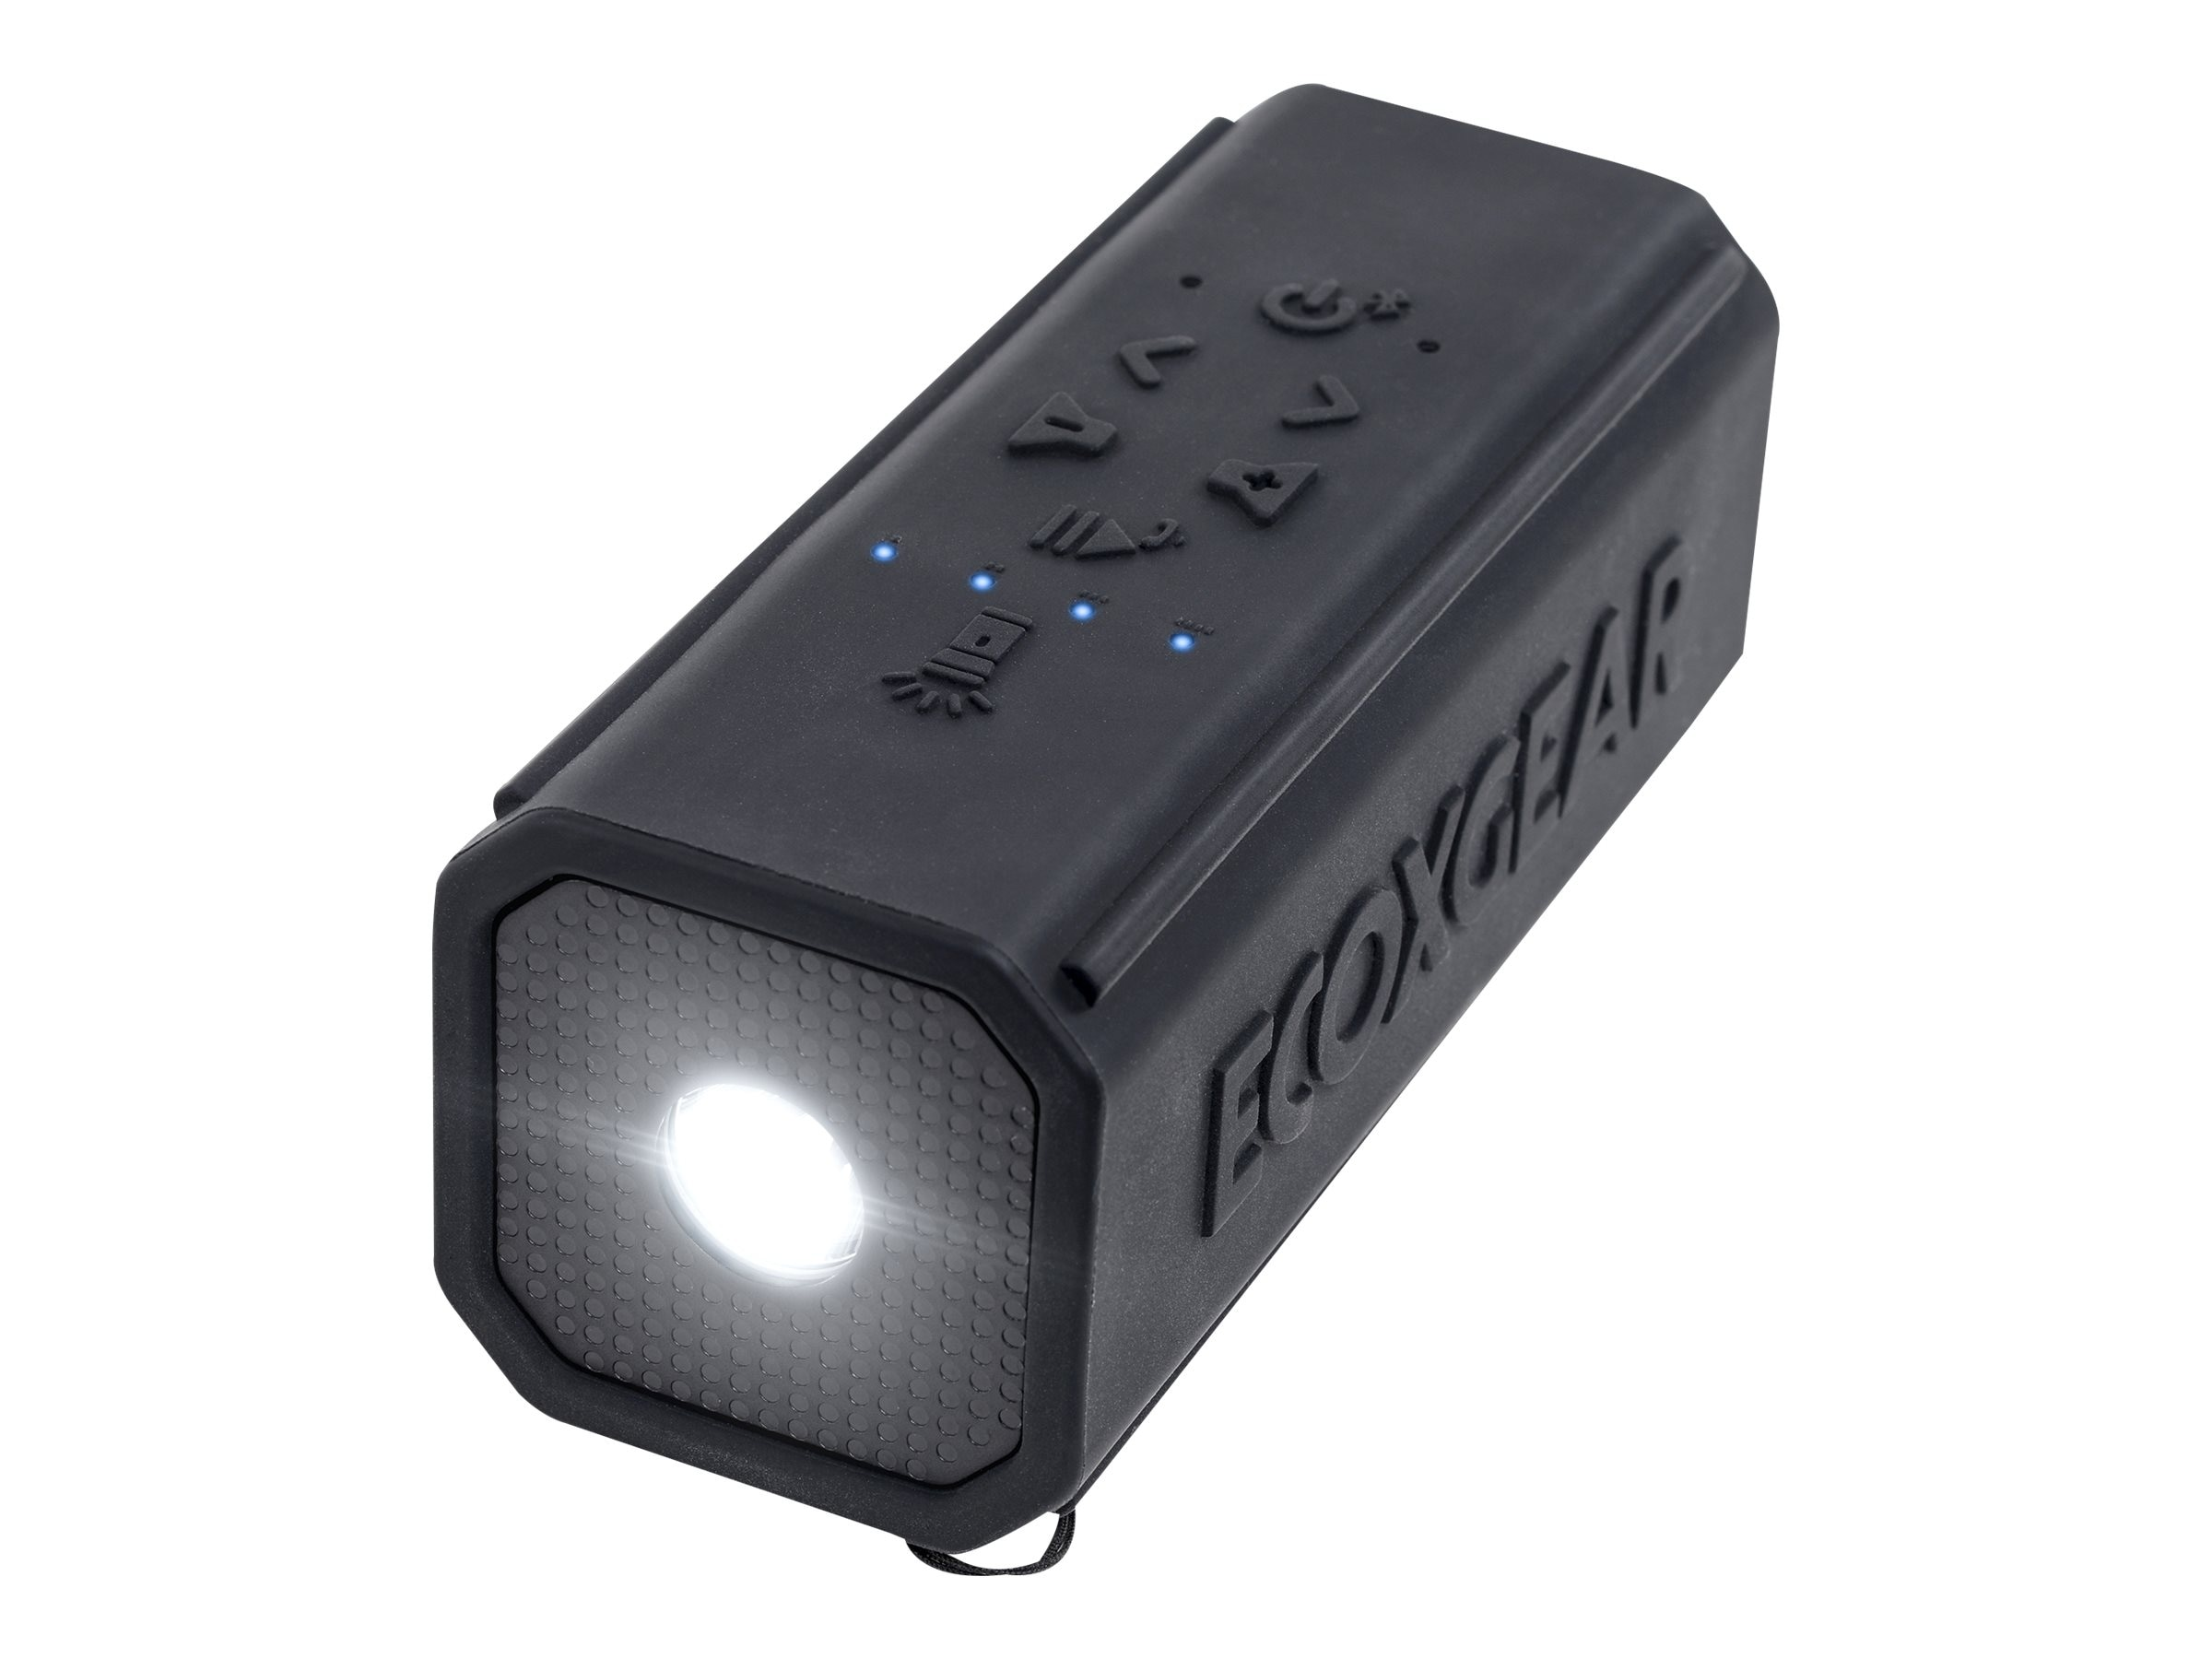 Grace Digital Audio ECOXGEAR Powerbank Speaker - Black